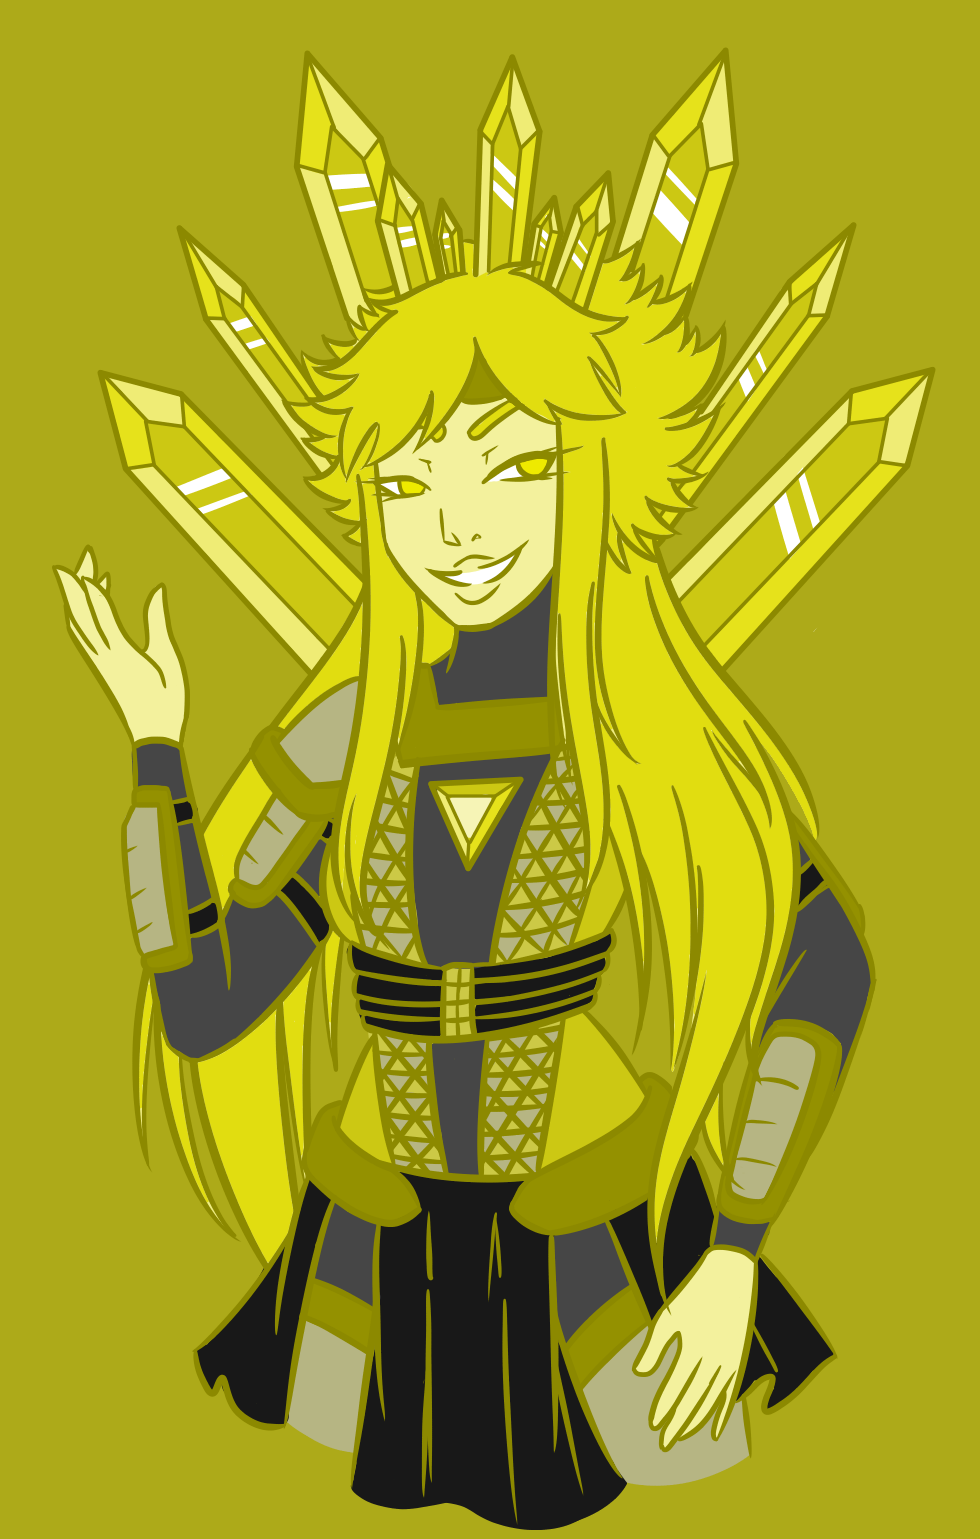 Theory Of Character Design : Homeworld theory character designs yellow diamond by